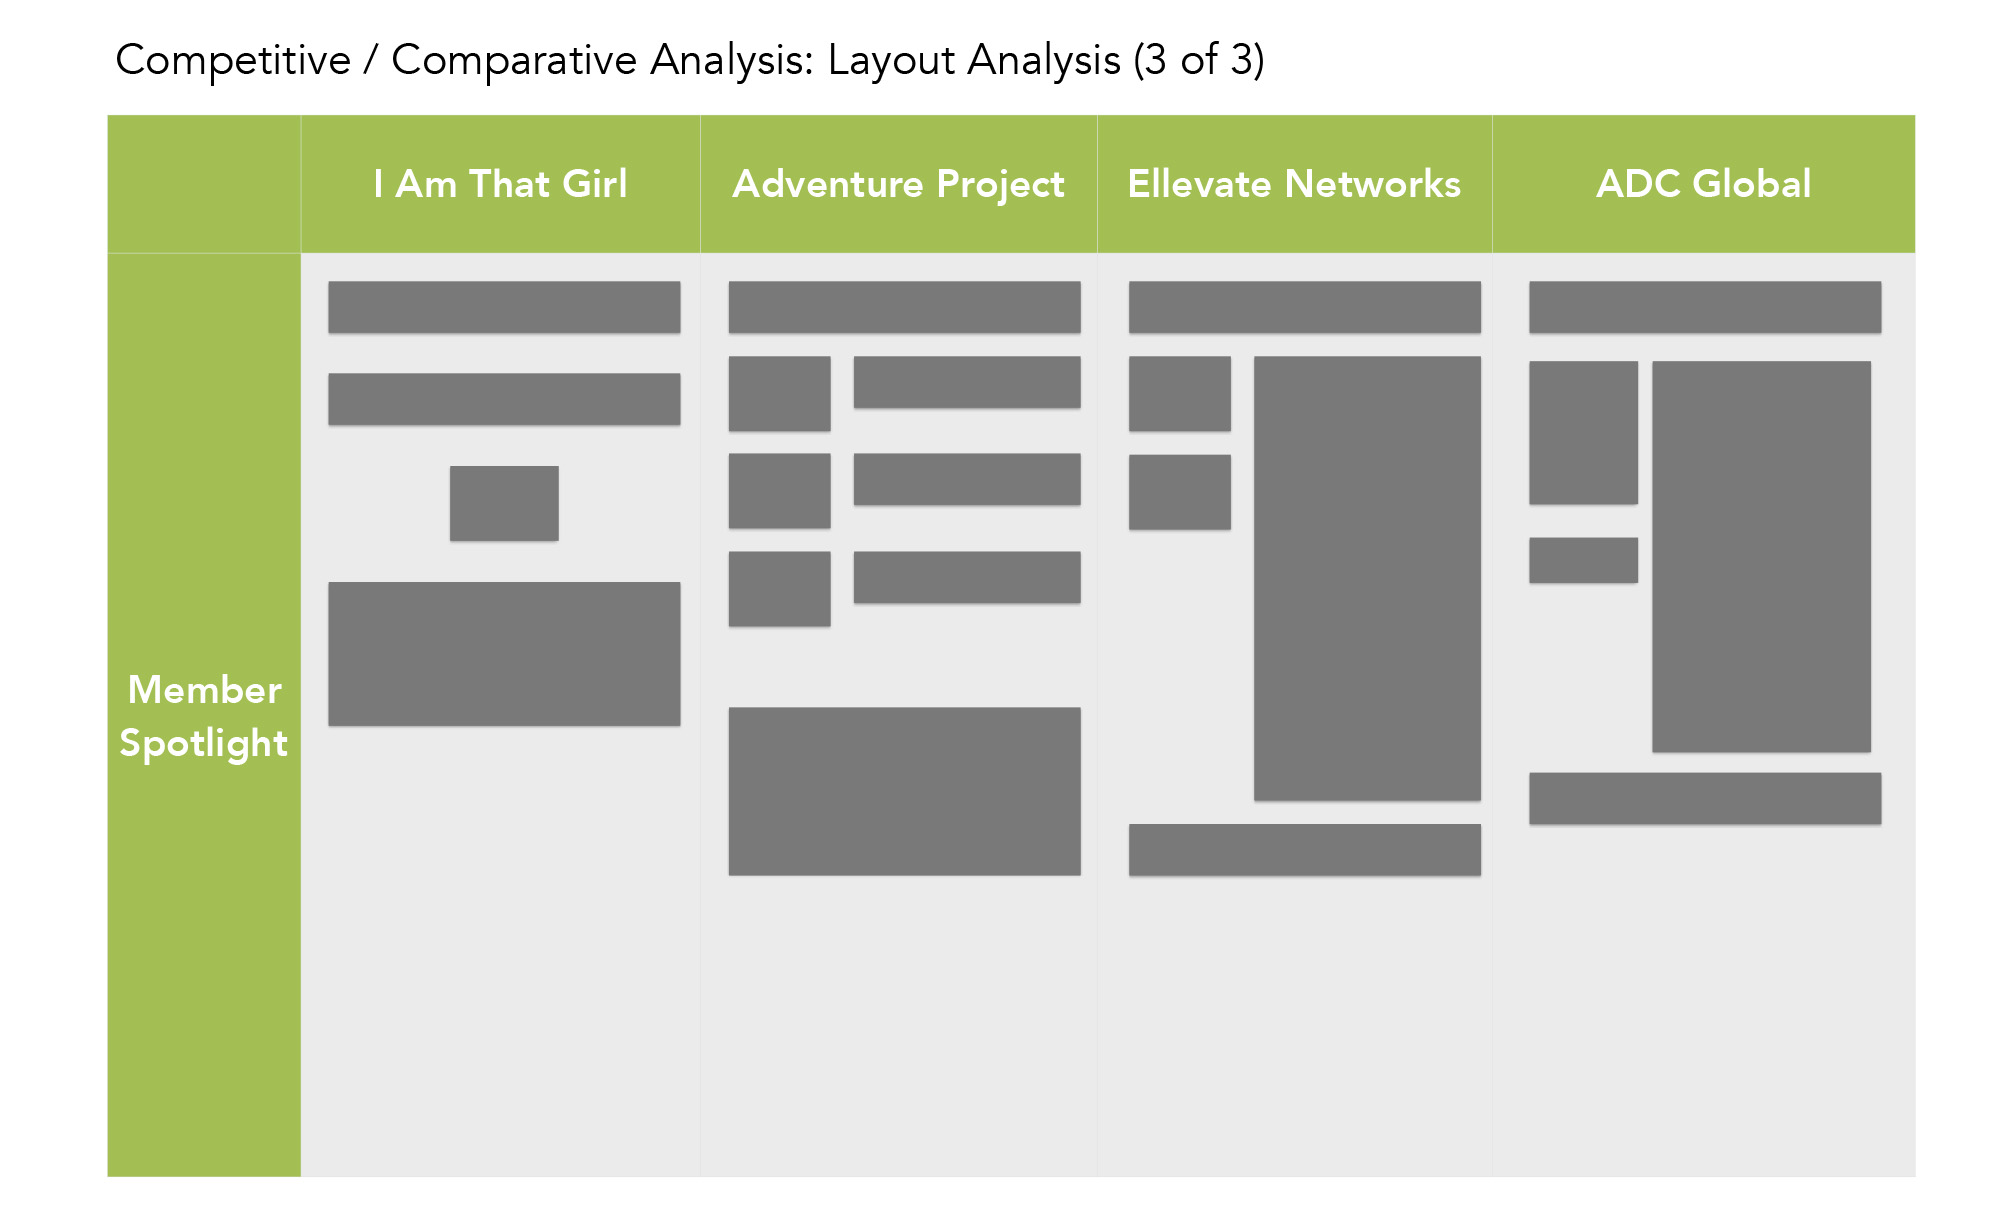 NYWSE_Competitive_Analysis_092616_0000_NYWSE_Deliverables 23.jpg